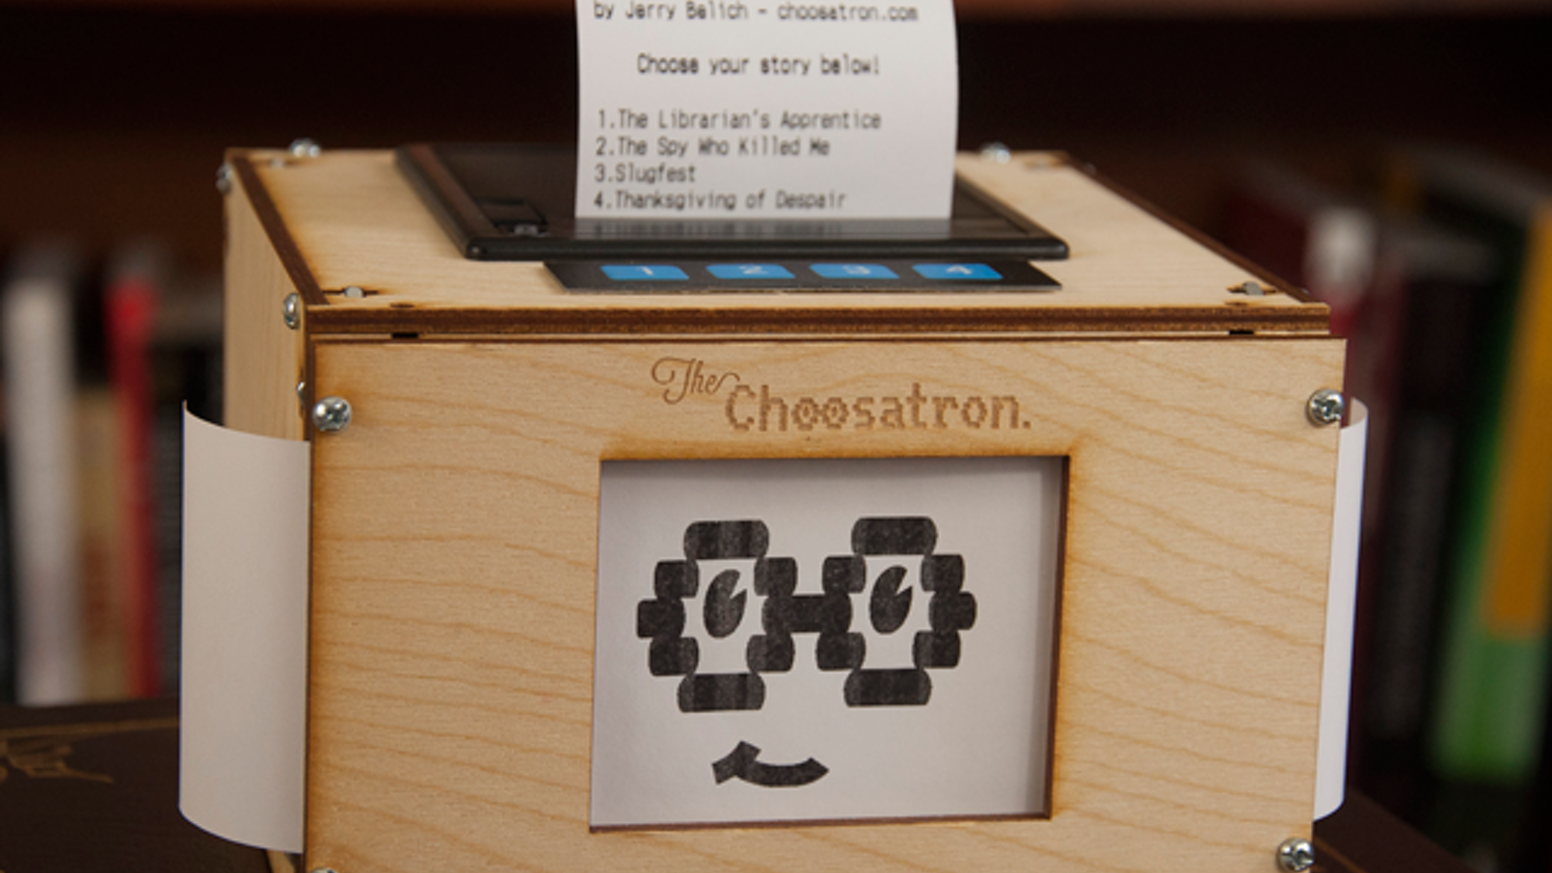 The Choosatron: Interactive Fiction Arcade Machine By